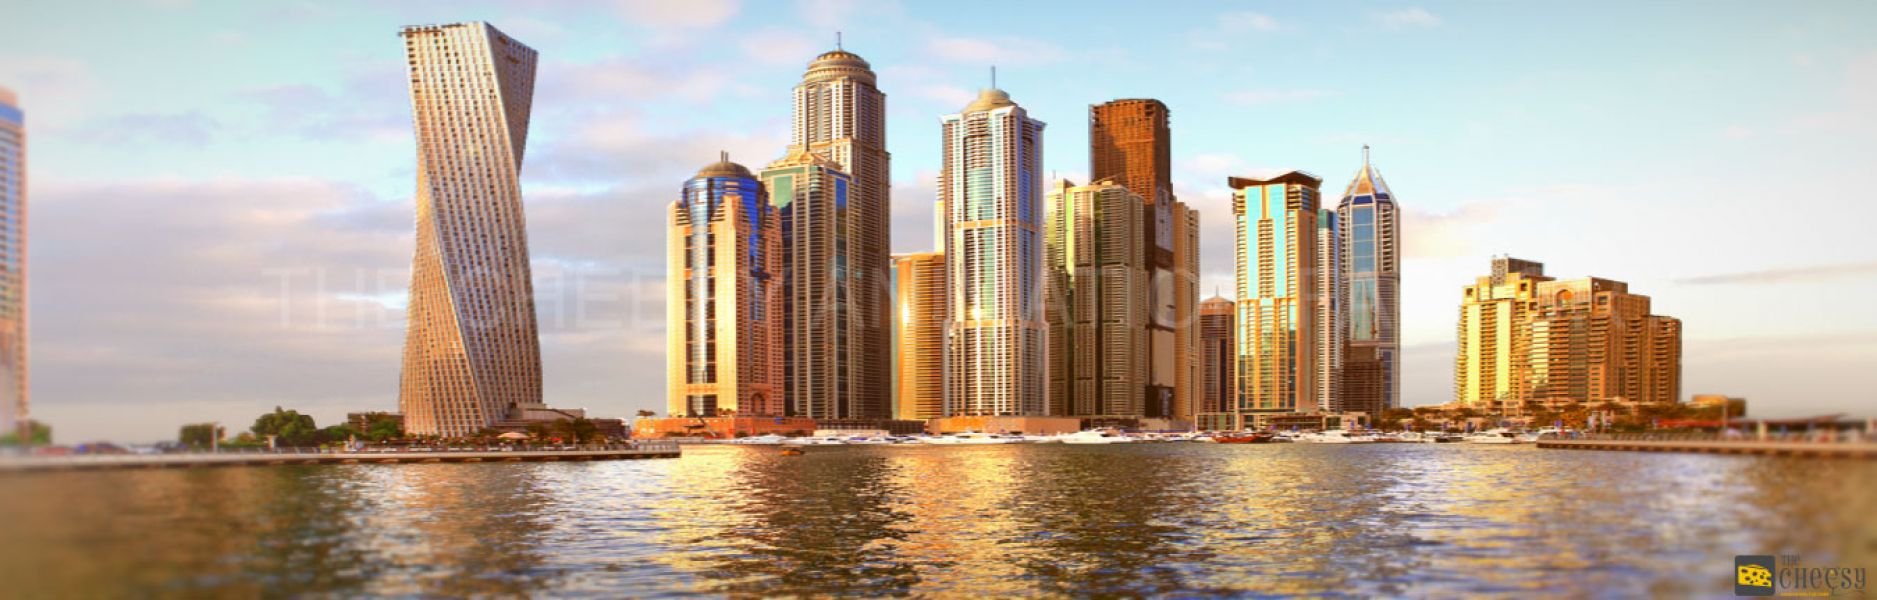 3D Walkthrough for Dubai (UAE)